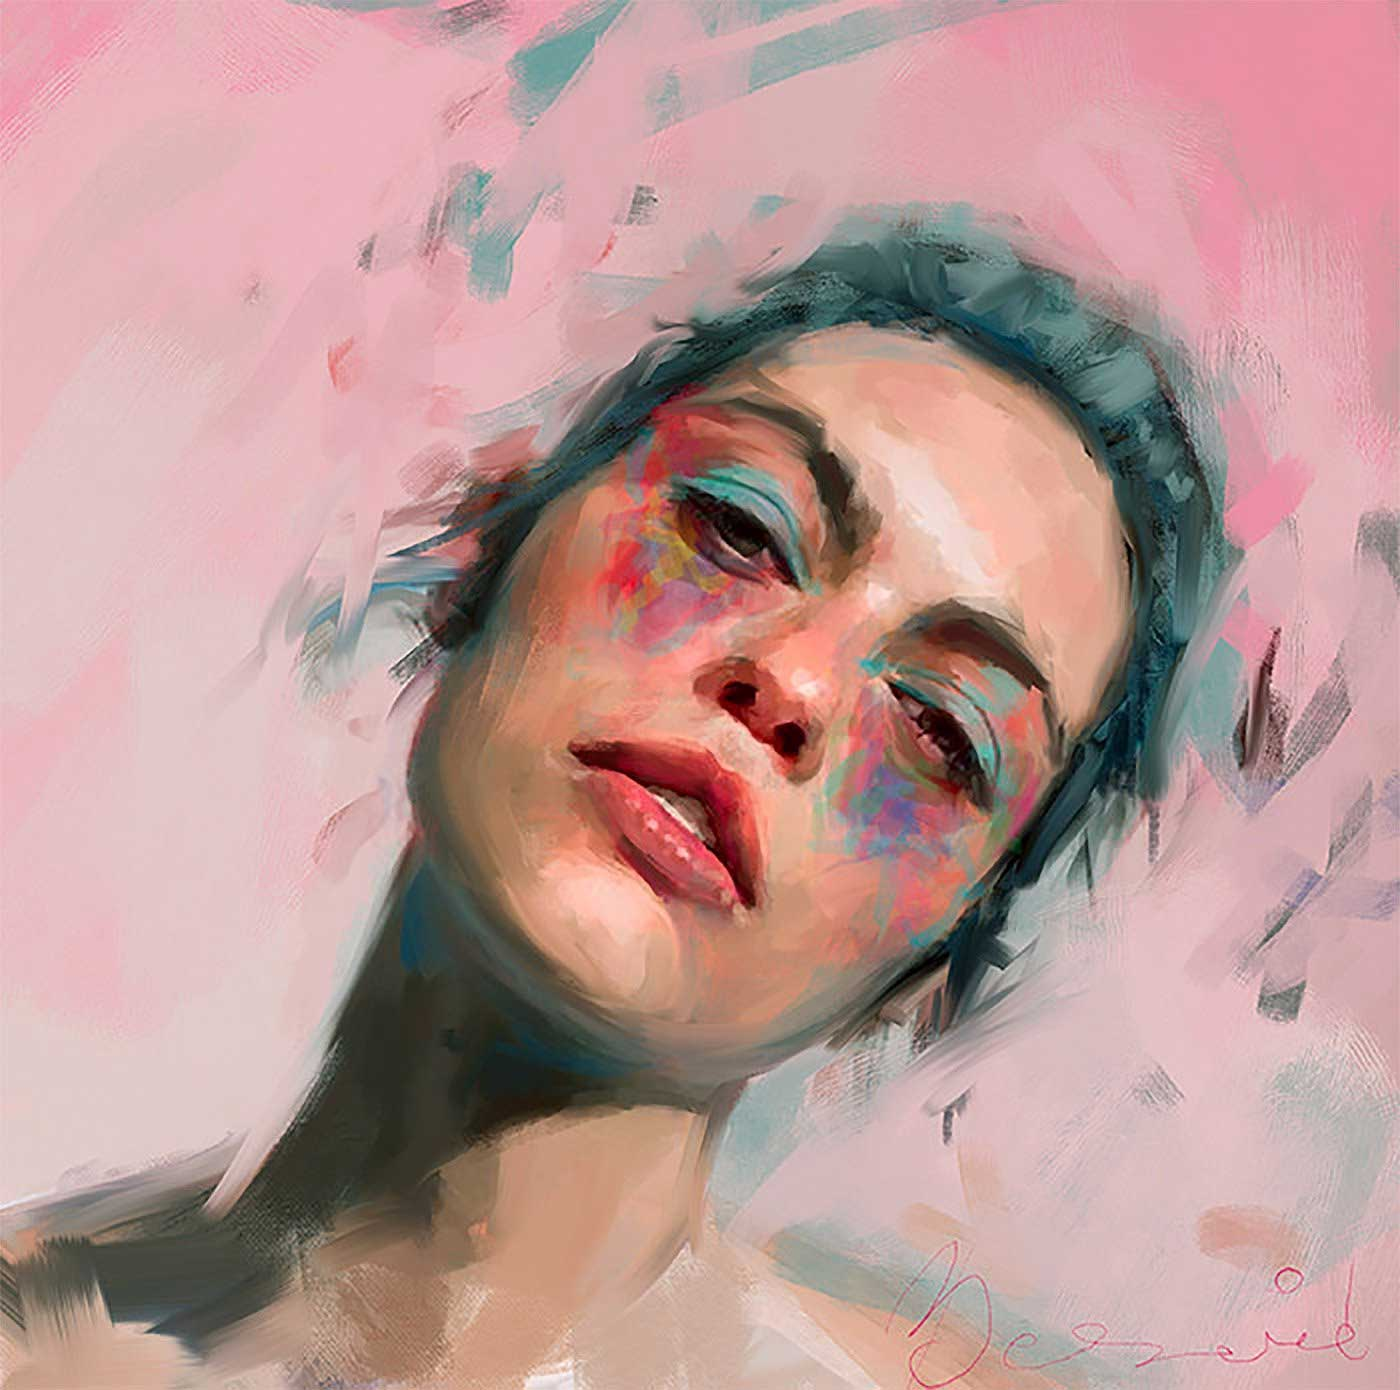 Neue Digital Paintings von Ivana Besevic Ivana-Besevic-digital-paintings-portraits-2018_11